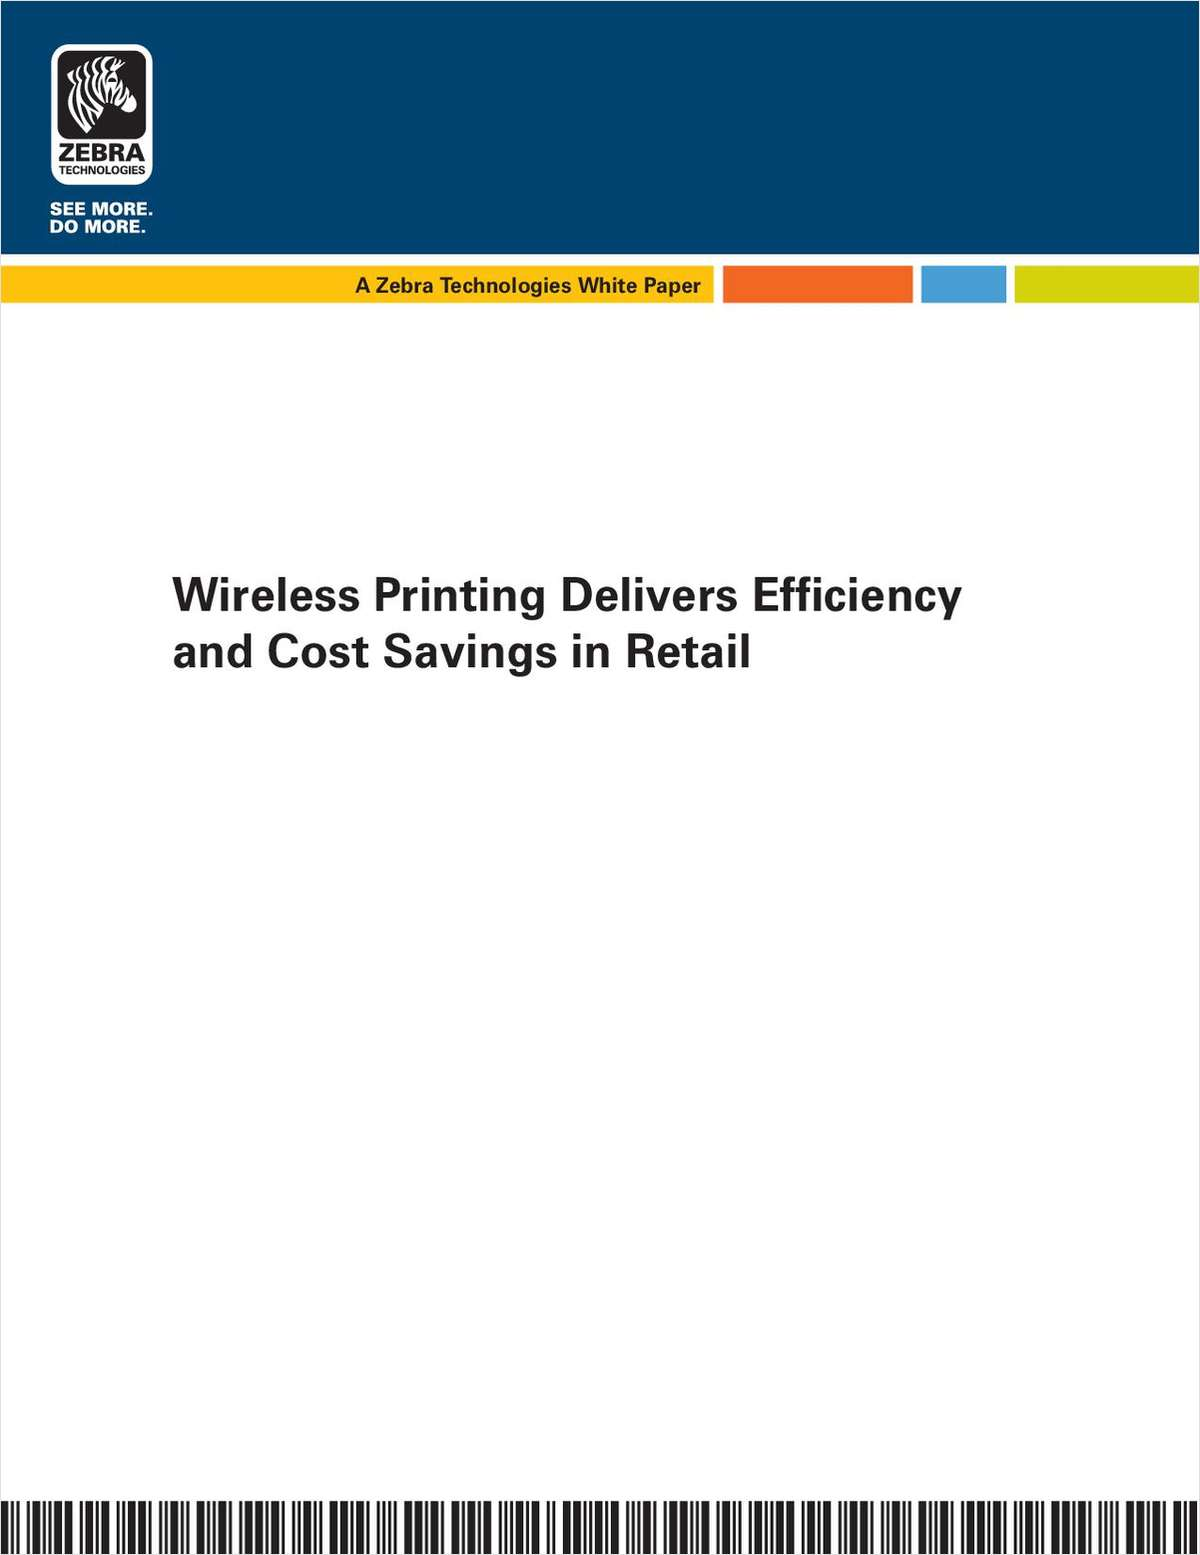 Wireless Printing Delivers Efficiency and Cost Savings in Retail